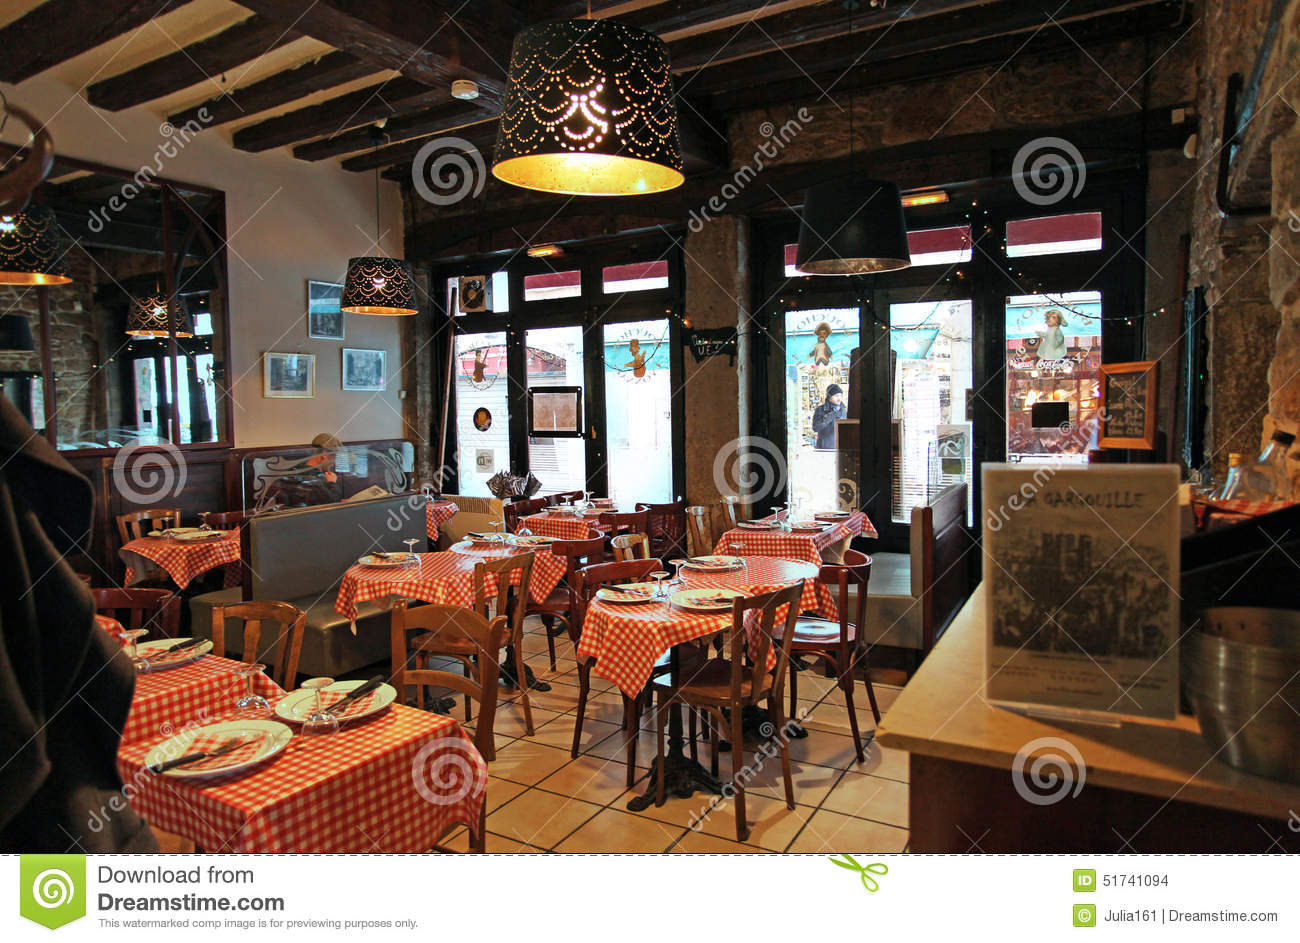 restaurant bouchon in lyon interior france editorial